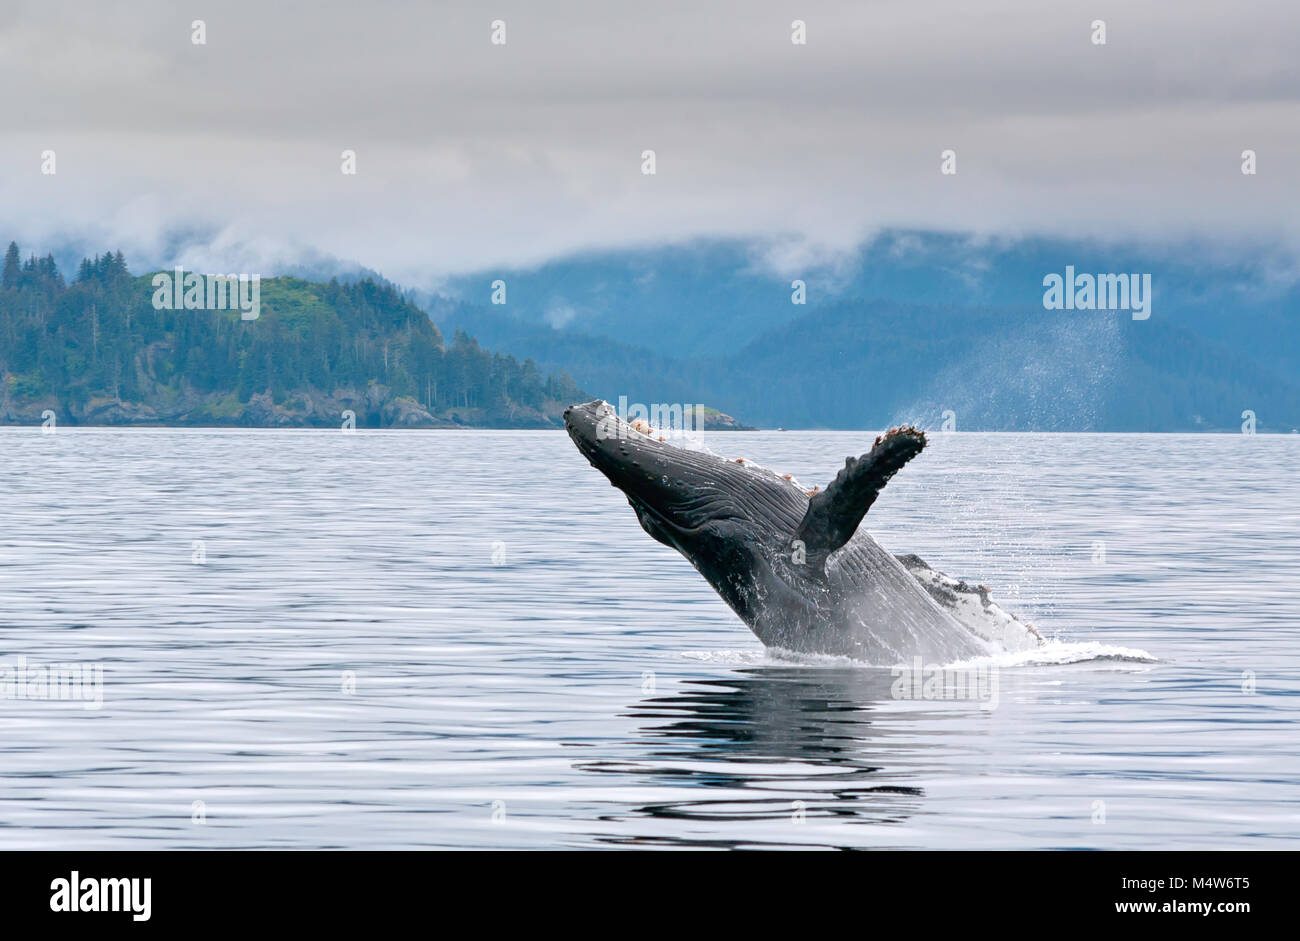 A whale breaching in the alaskan ocean with water splash Stock Photo